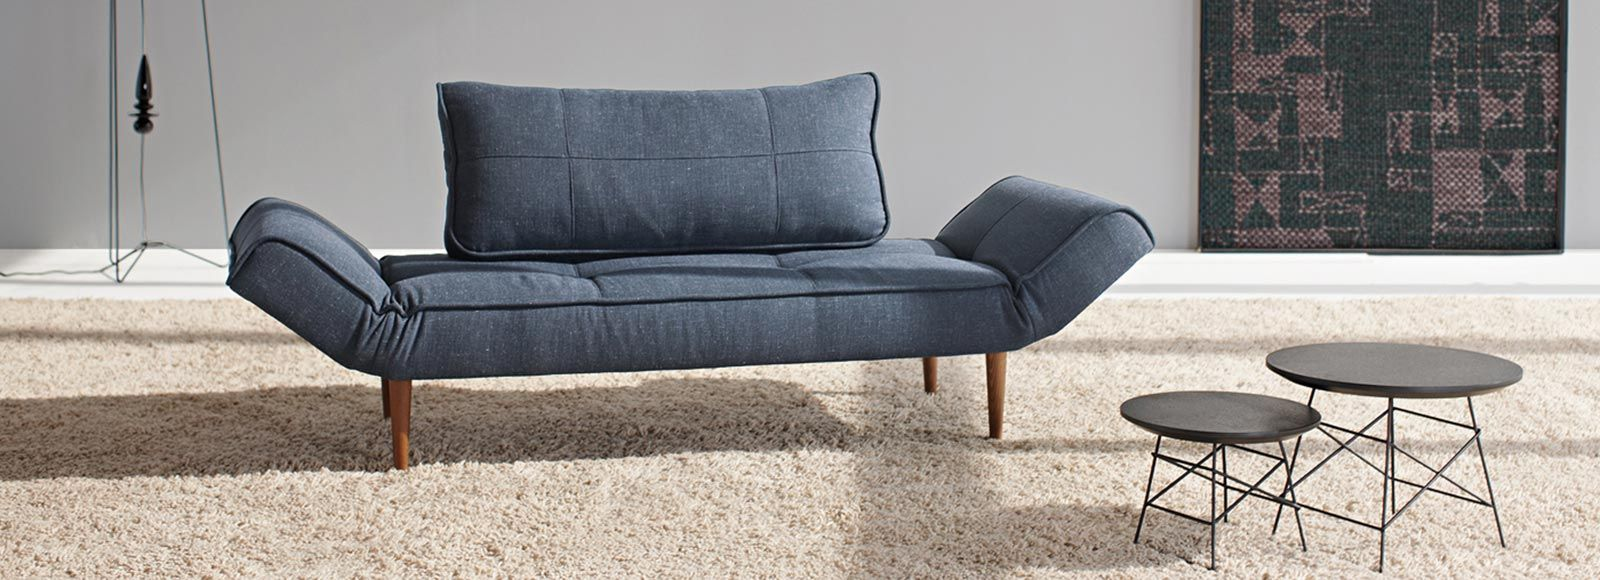 Per Weiss Sofa Bed Uk Reinventing Classic Scandinavian Furniture For Smart Modern